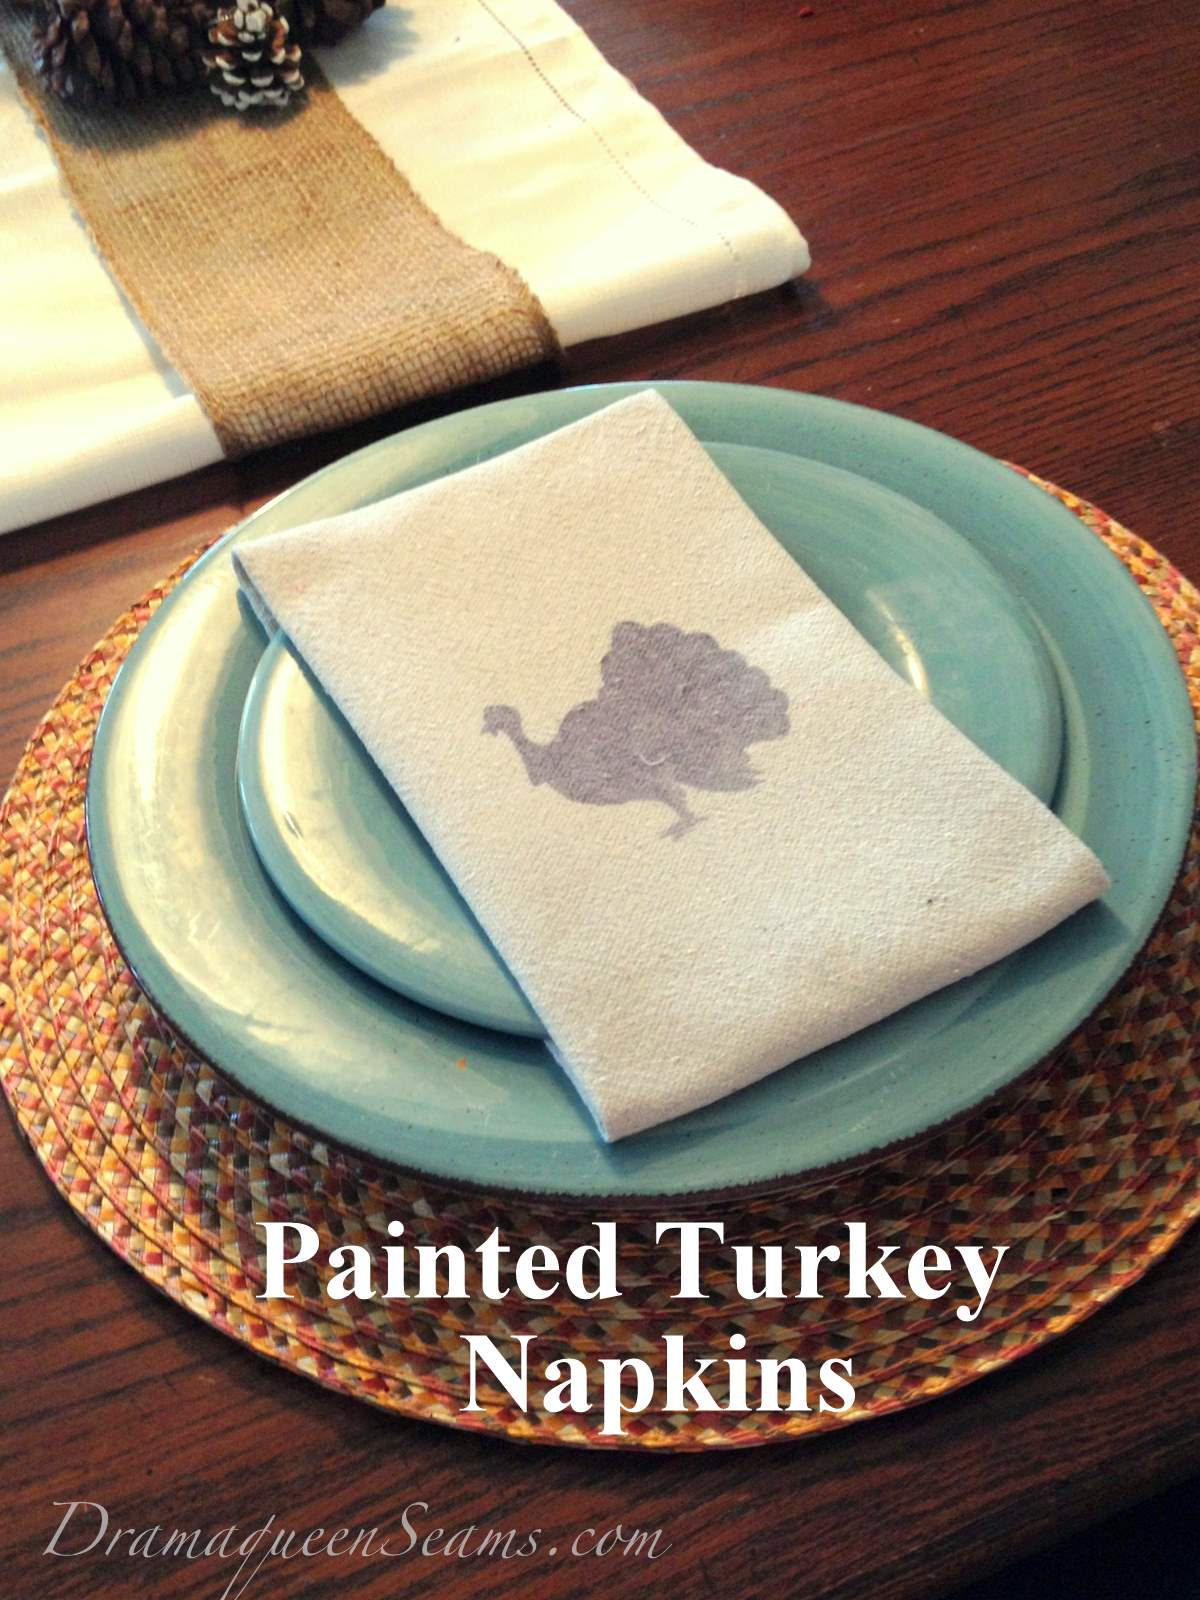 Painted turkey napkins drama queen seams for Turkey napkins